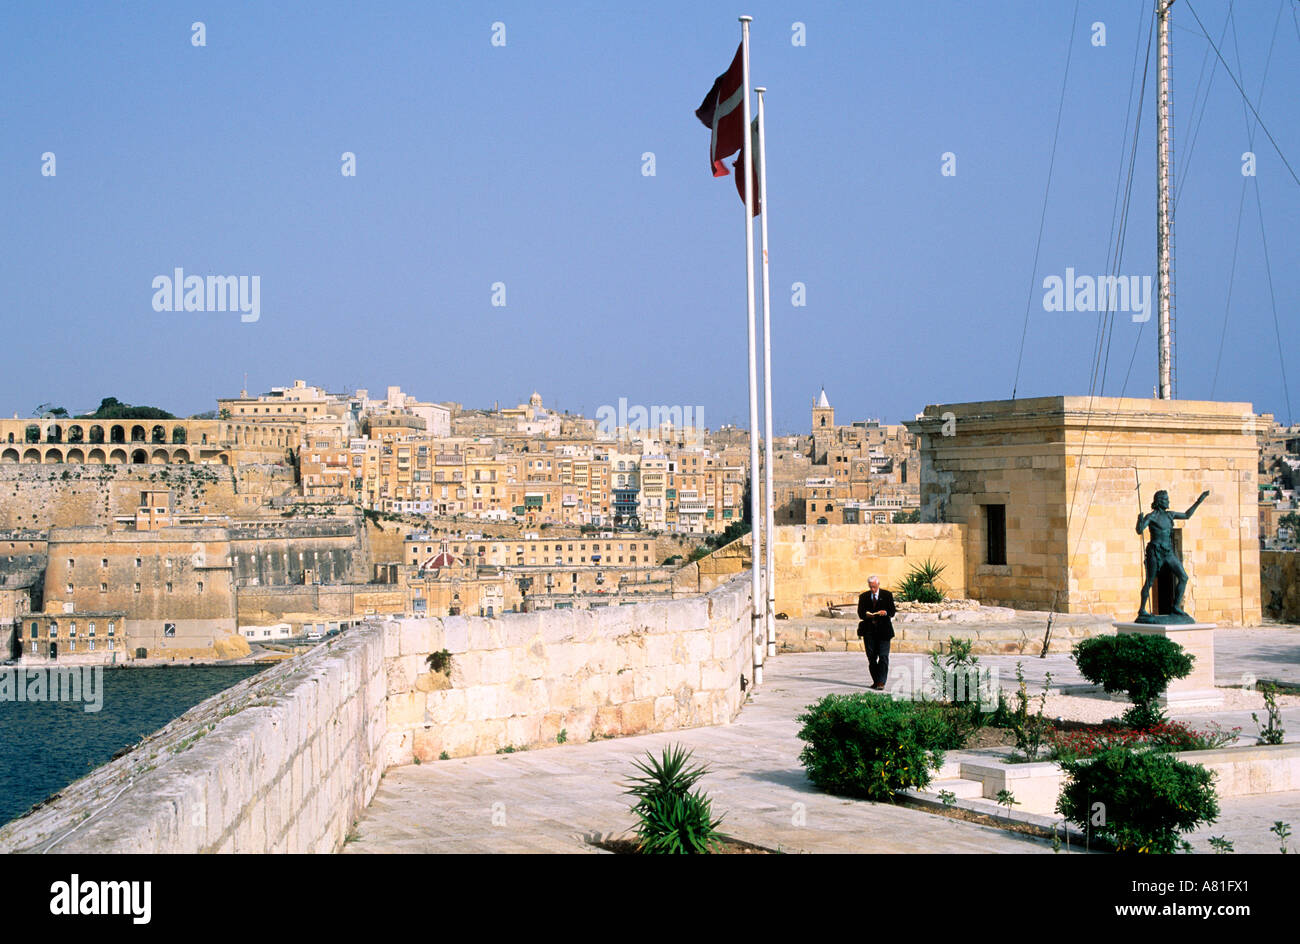 Malta, Fort Saint Angelo, exclusive use of the Sovereign Order of Malta - Stock Image